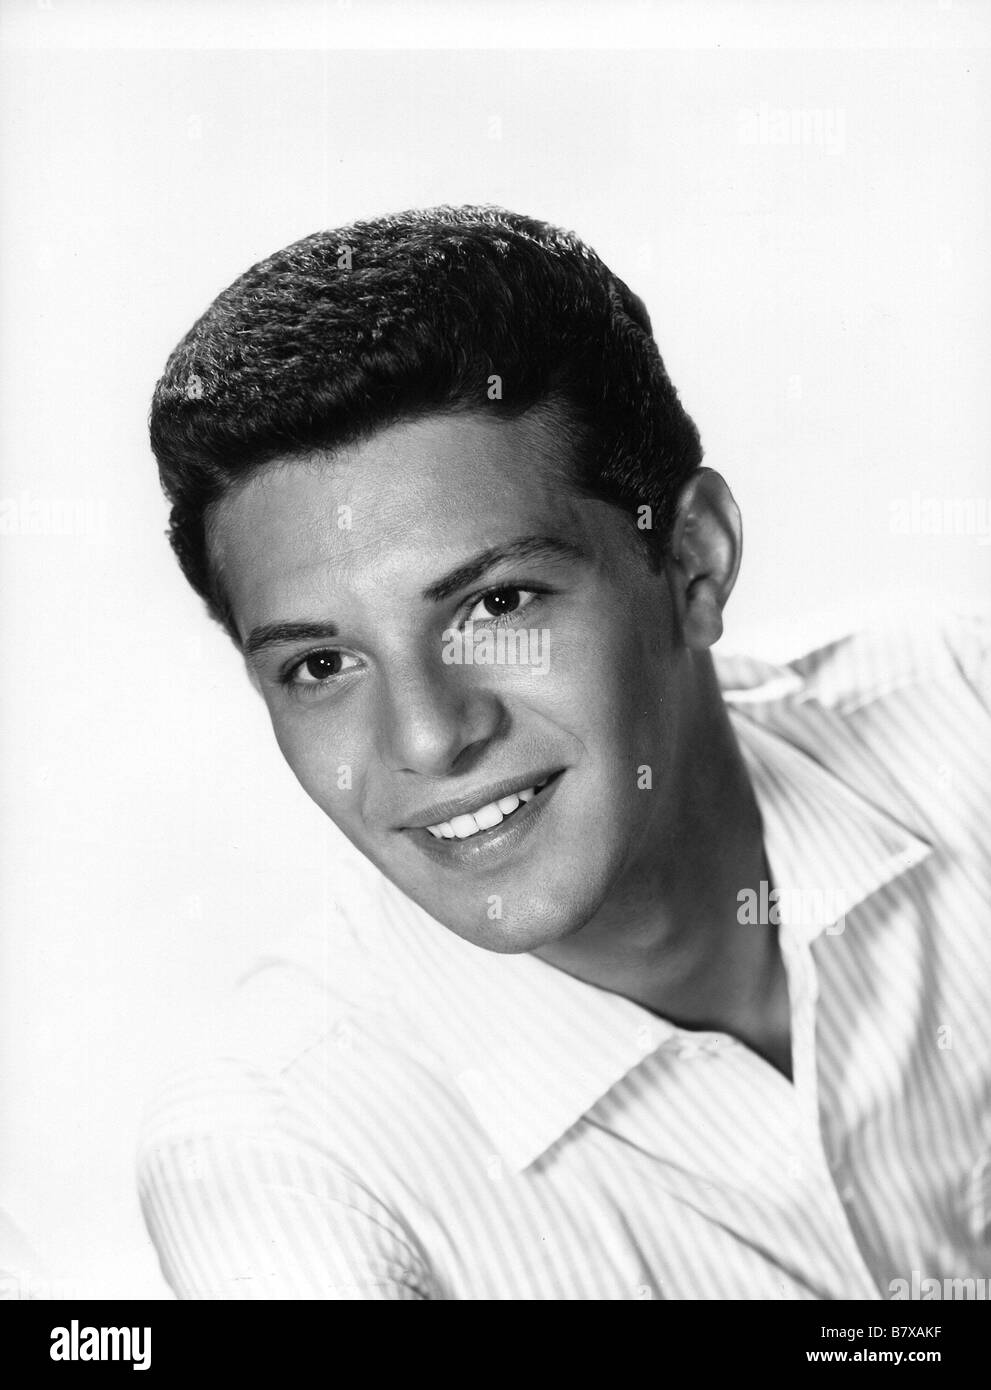 Frankie Avalon Pics intended for frankie avalon photos & frankie avalon images - alamy